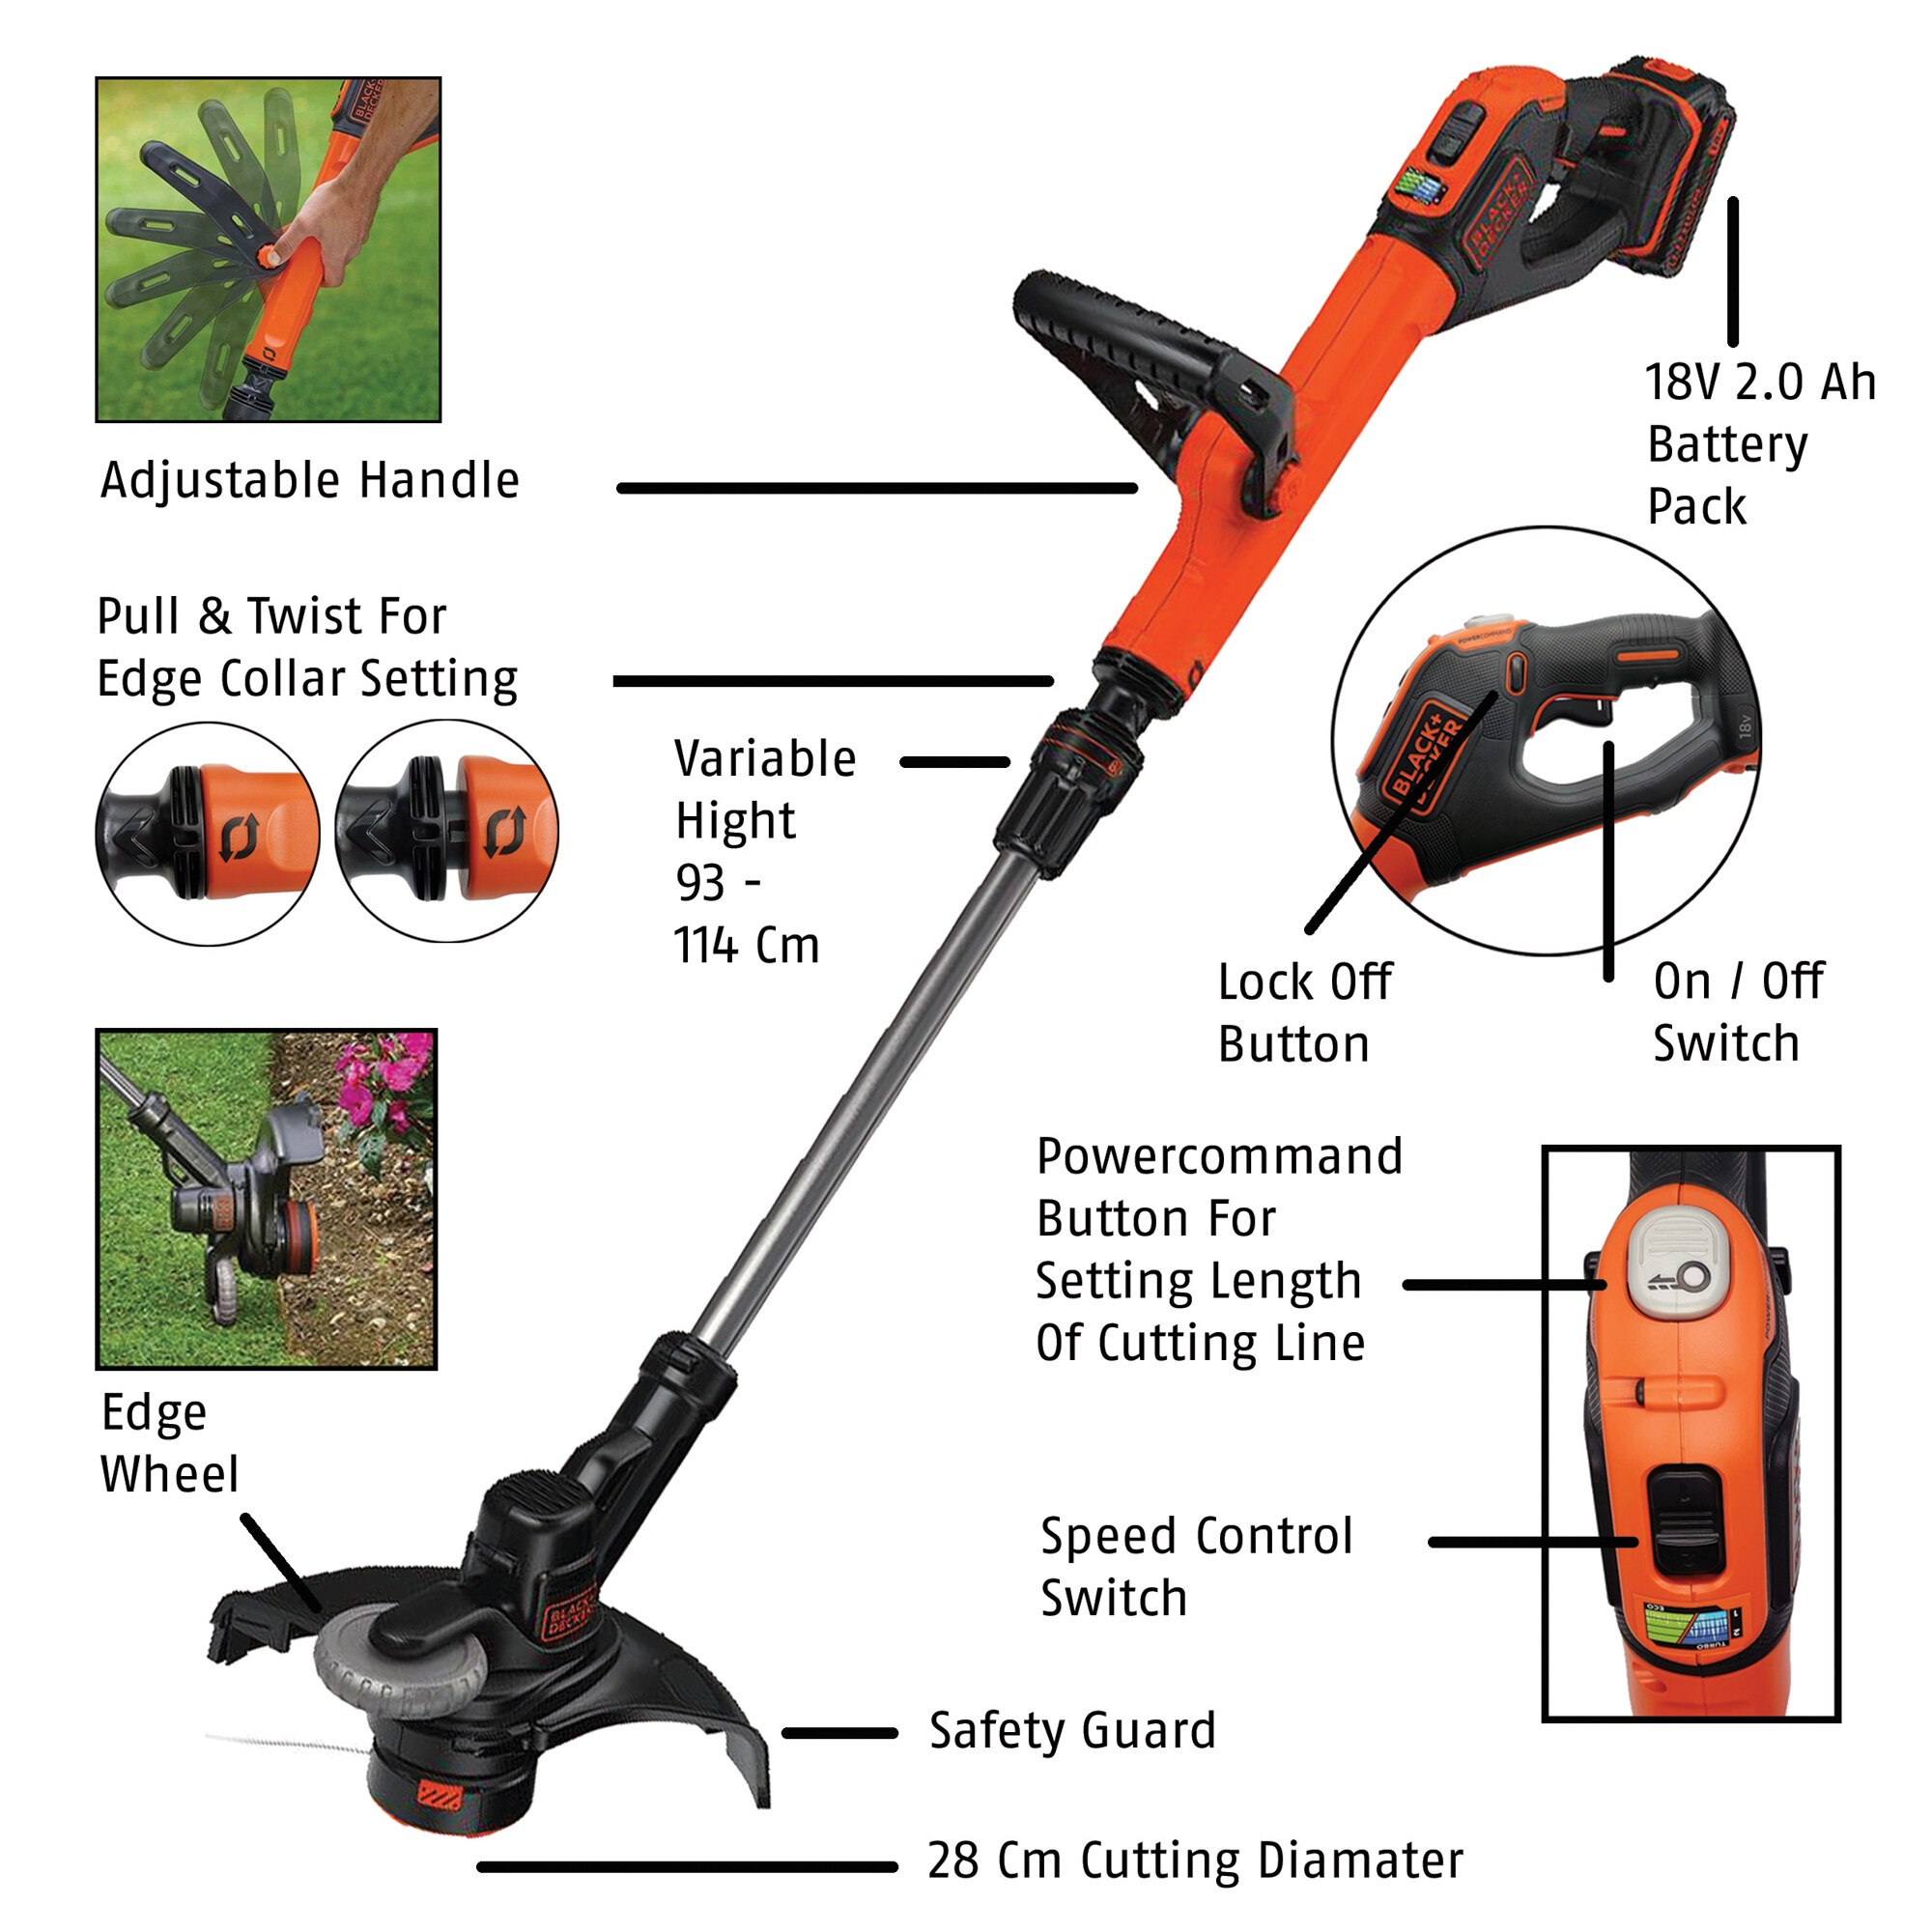 Black & Decker STC1820EPCF-B1 18V 2.0 Ah 28cm Cordless Grass Trimmer ( STC1820EPCF, STC1820 )